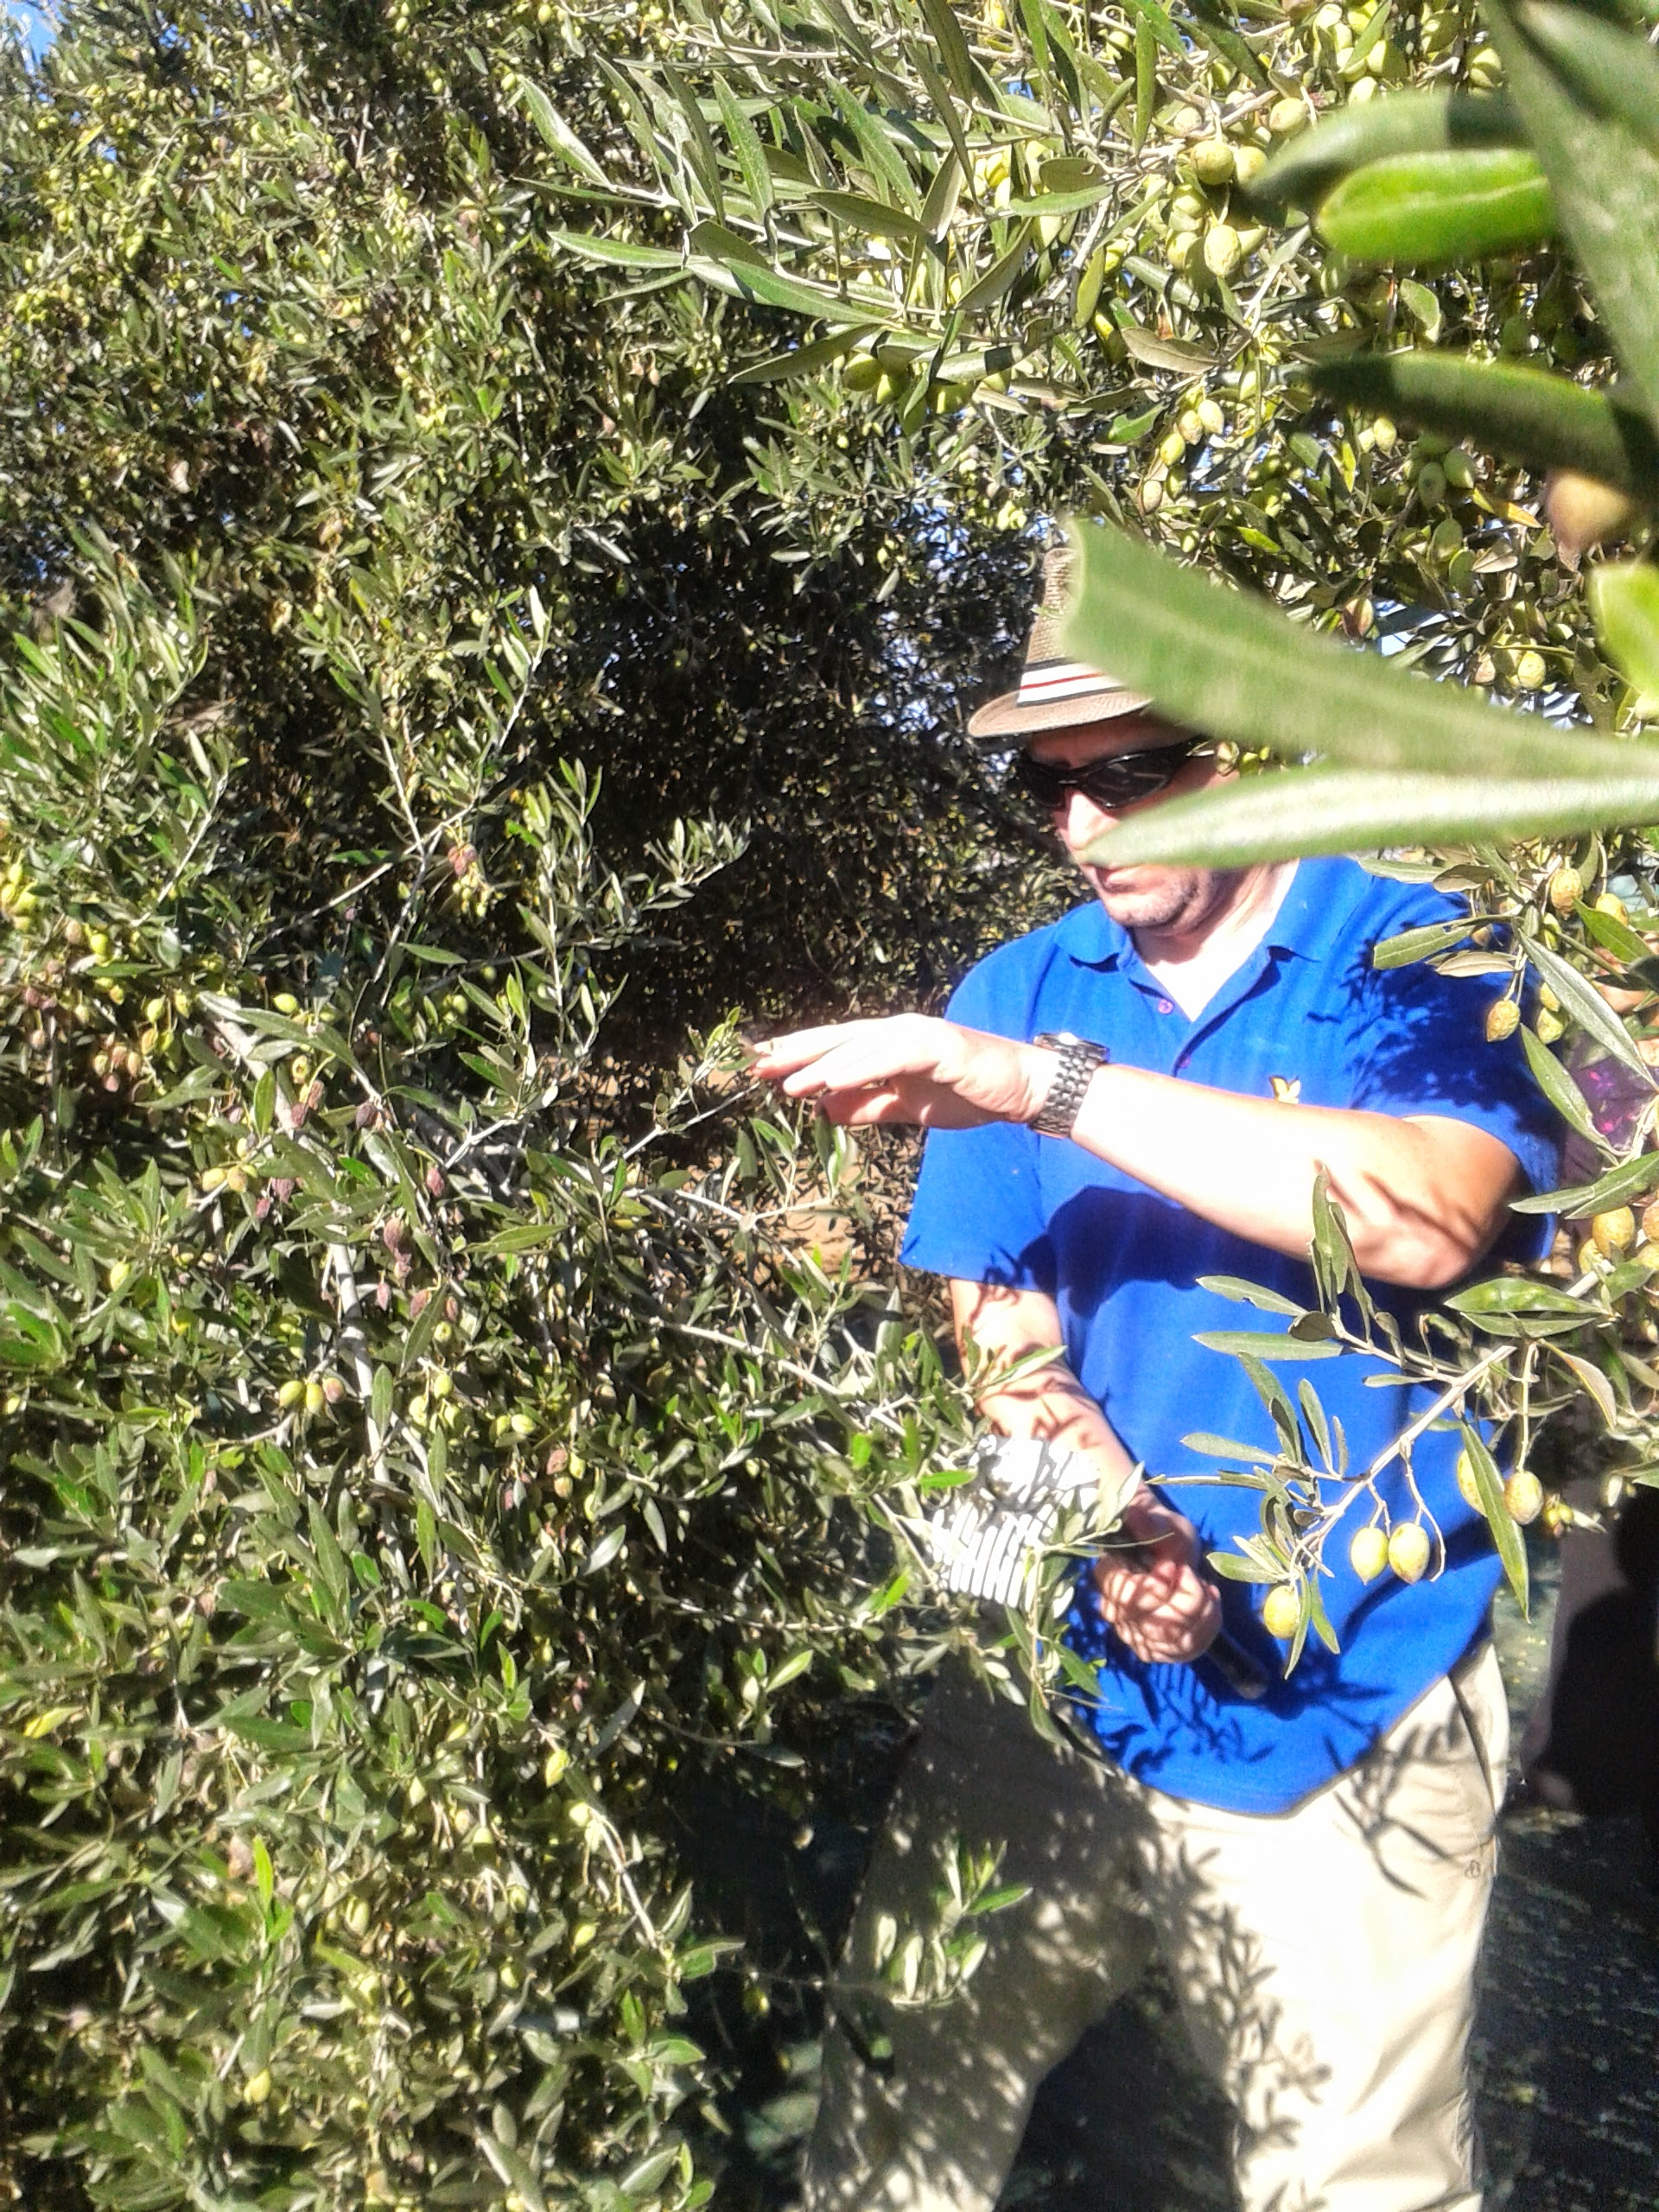 Rob harvesting the olives